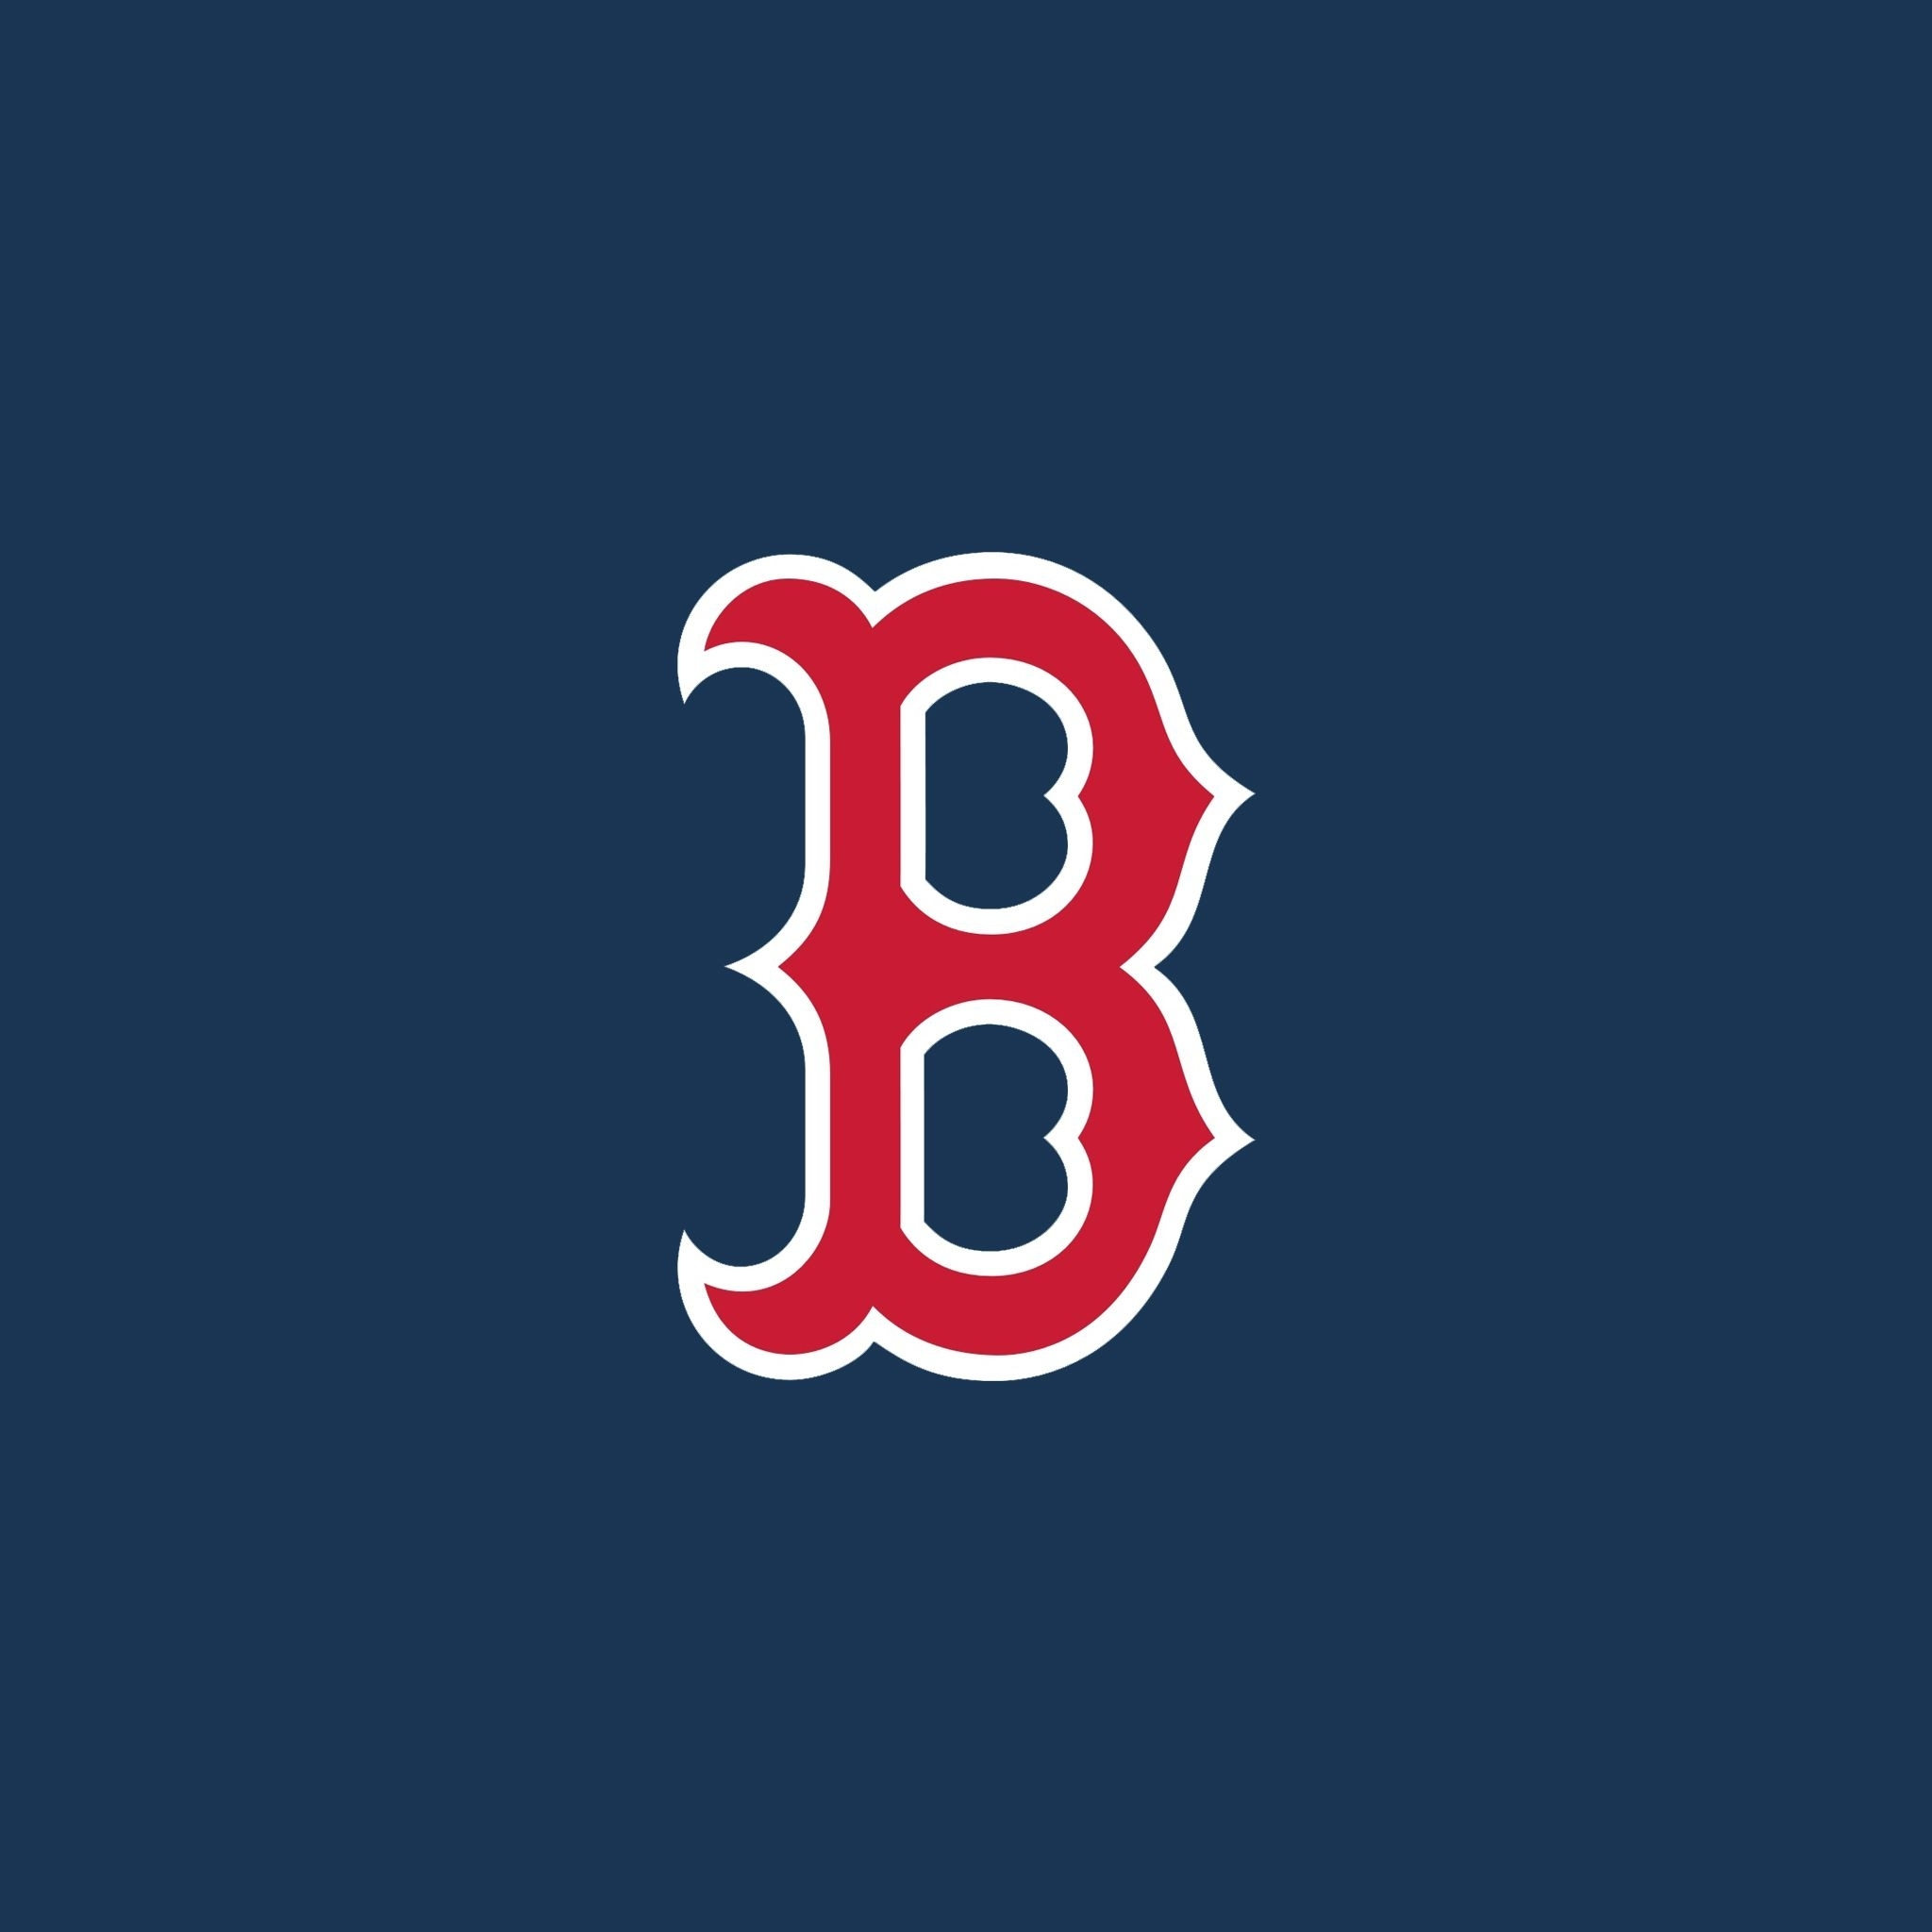 boston red sox logo wallpaper - cliparts.co | best games wallpapers